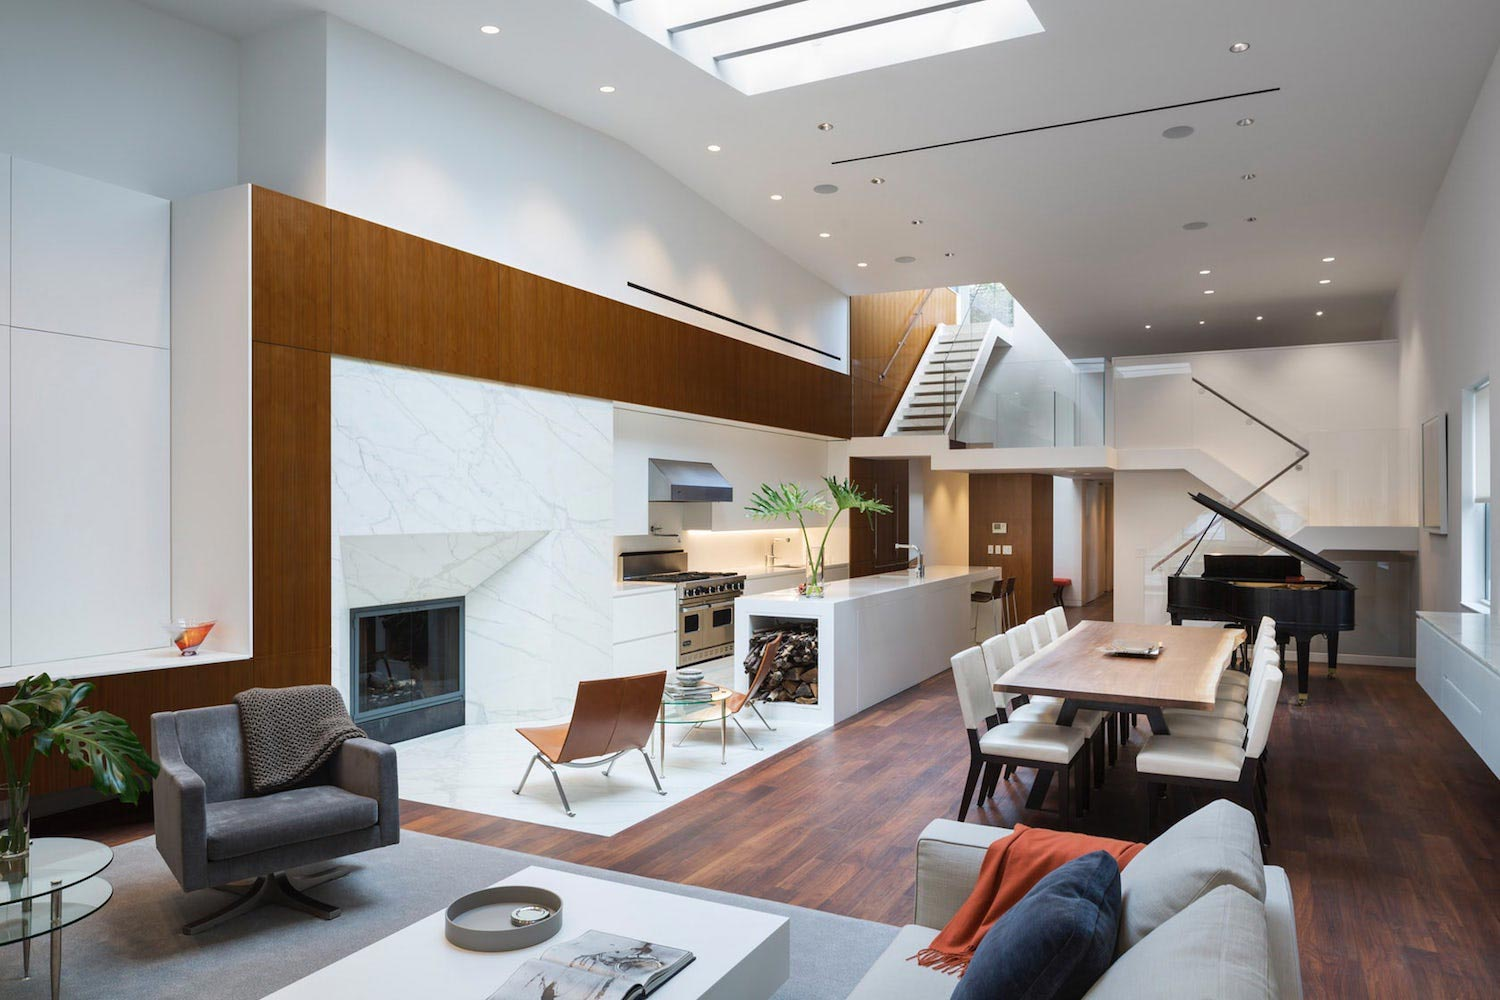 new york archives - caandesign | architecture and home design blog